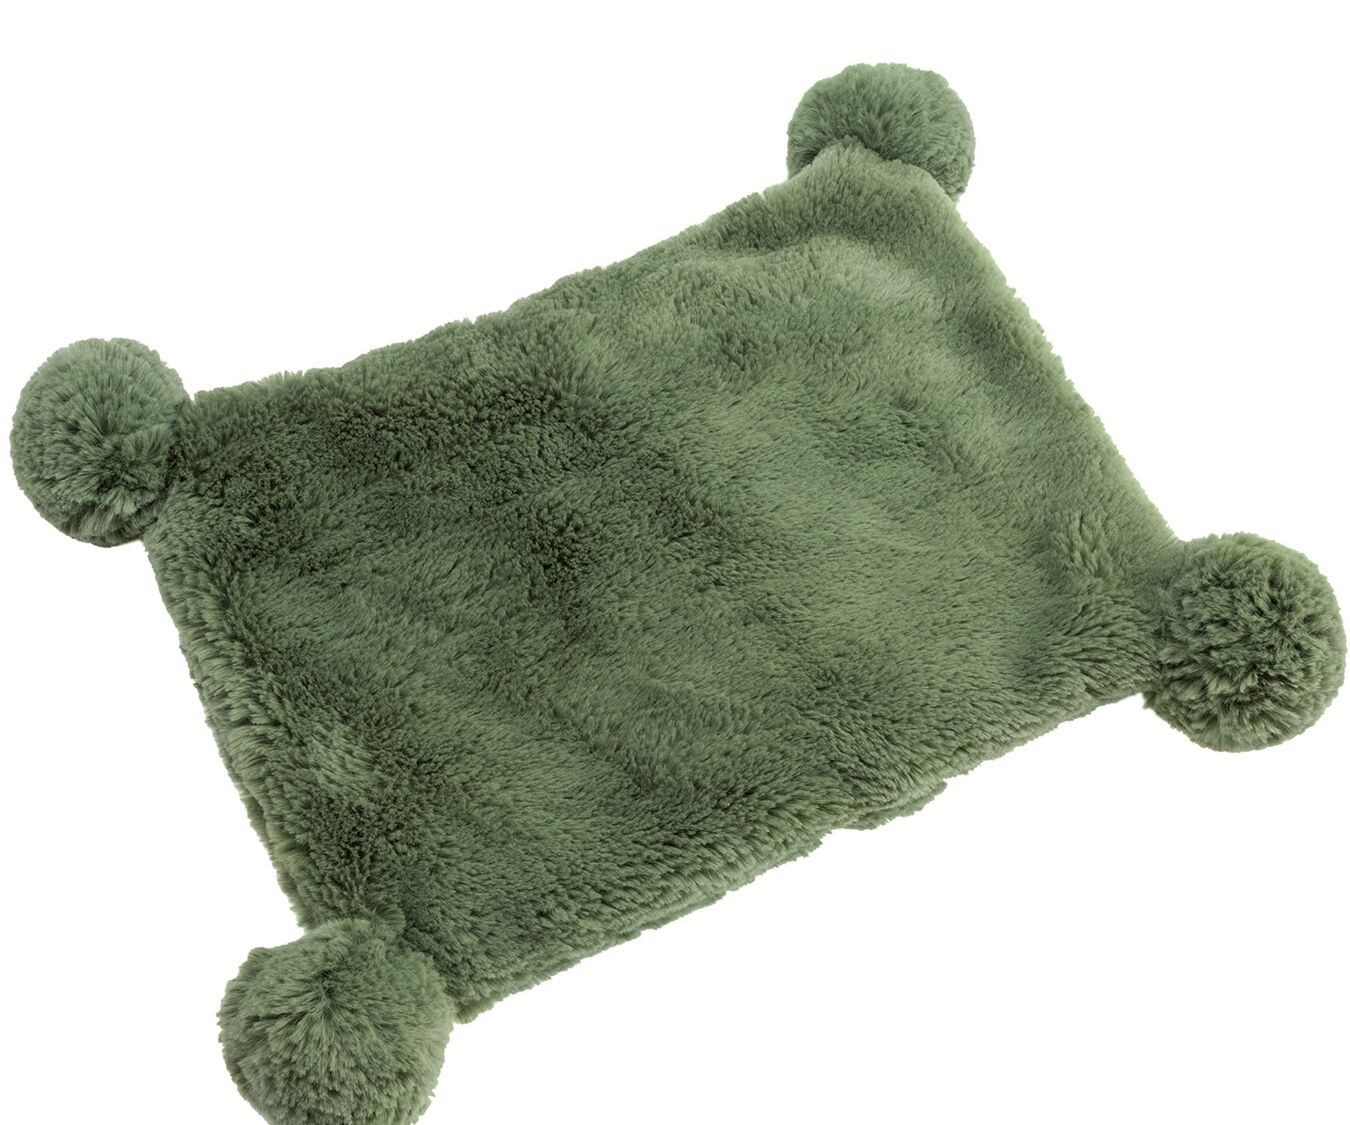 Heating Pad Color: Green